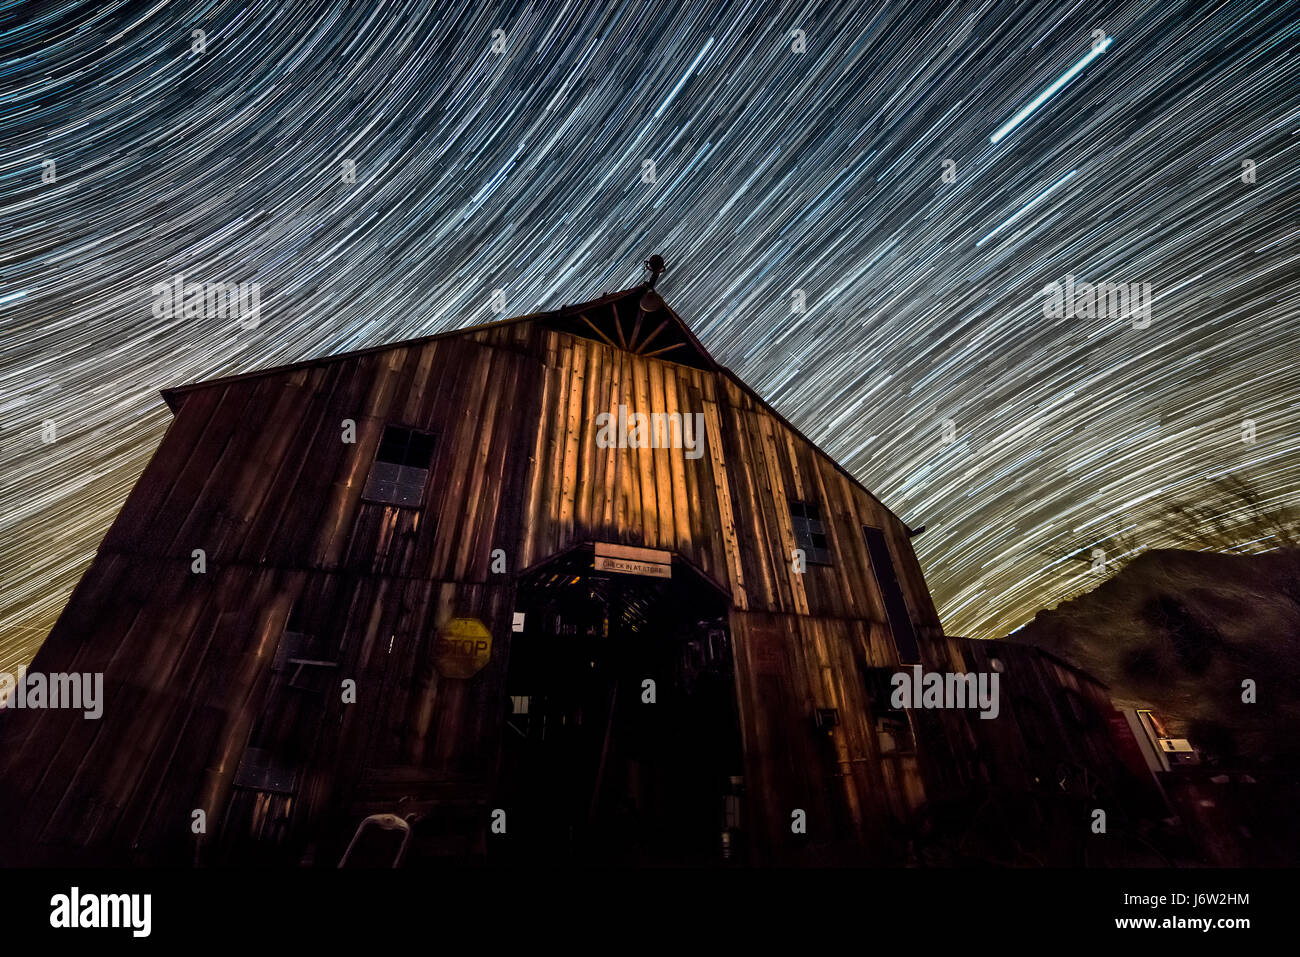 Star trail photography captures the path of distant stars over an old wodden barn as the earth rotates. - Stock Image